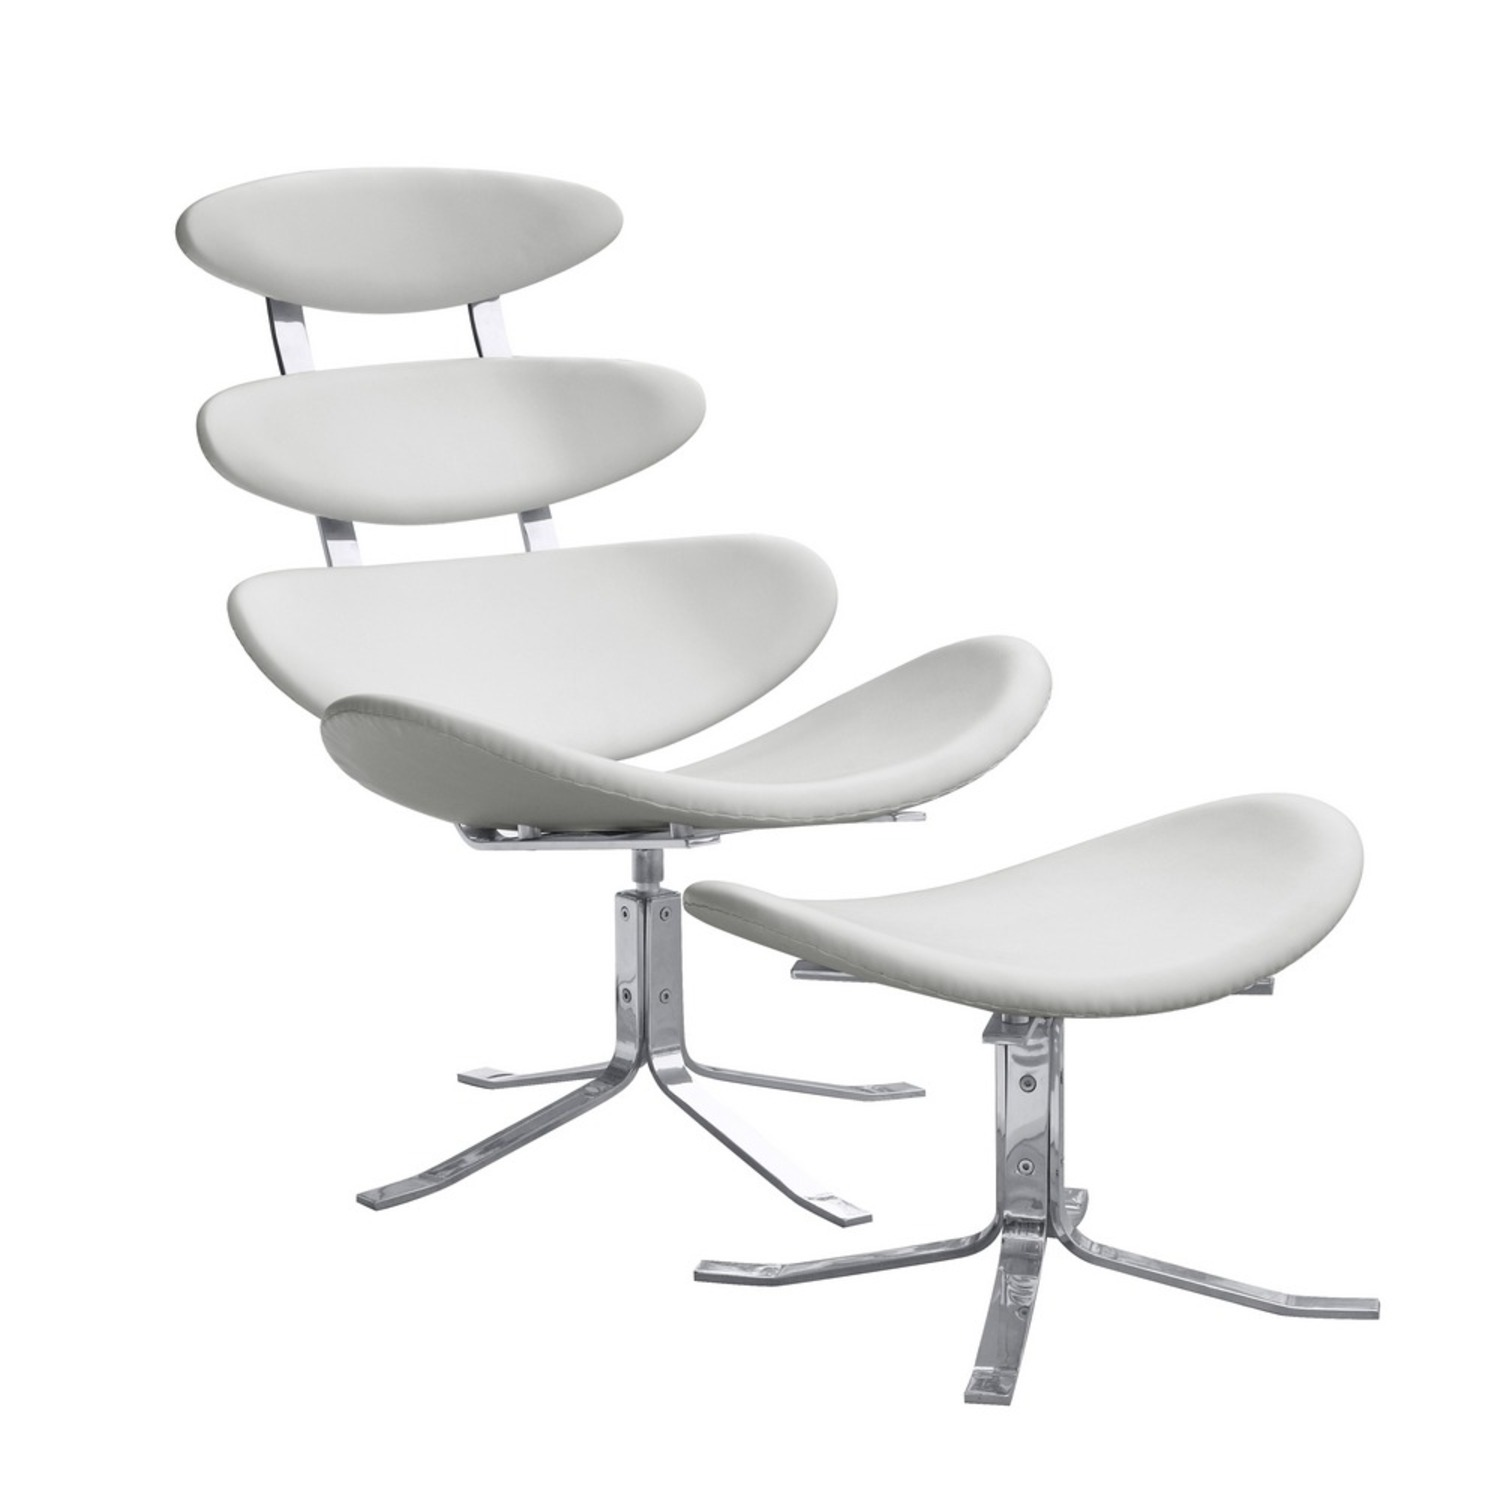 Chair & Ottoman In White Leather Sculptured Form - image-0